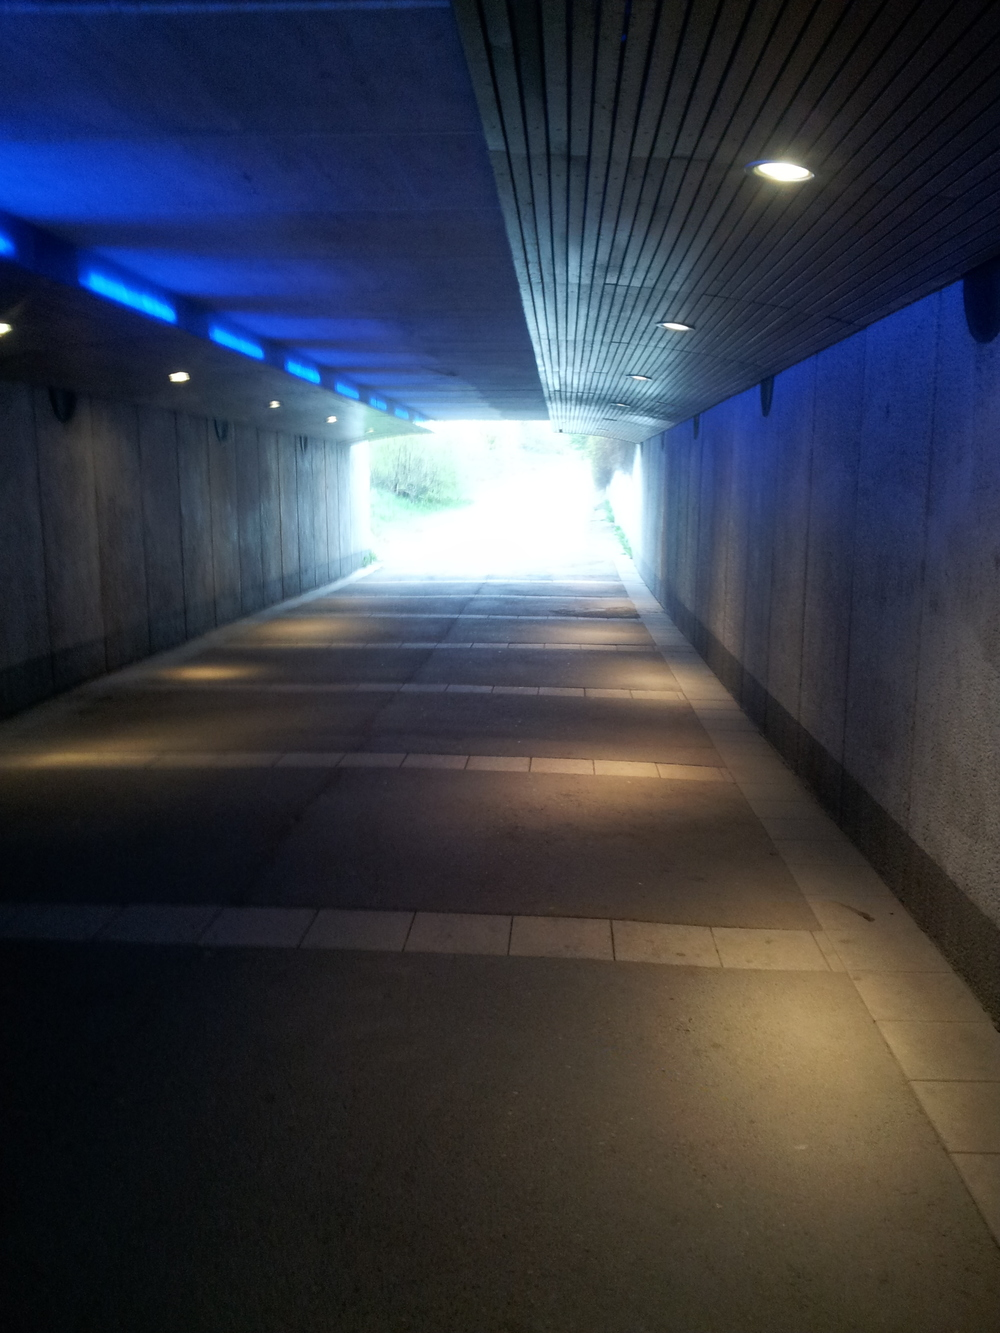 Just a tunnel, and some light at the end of it.